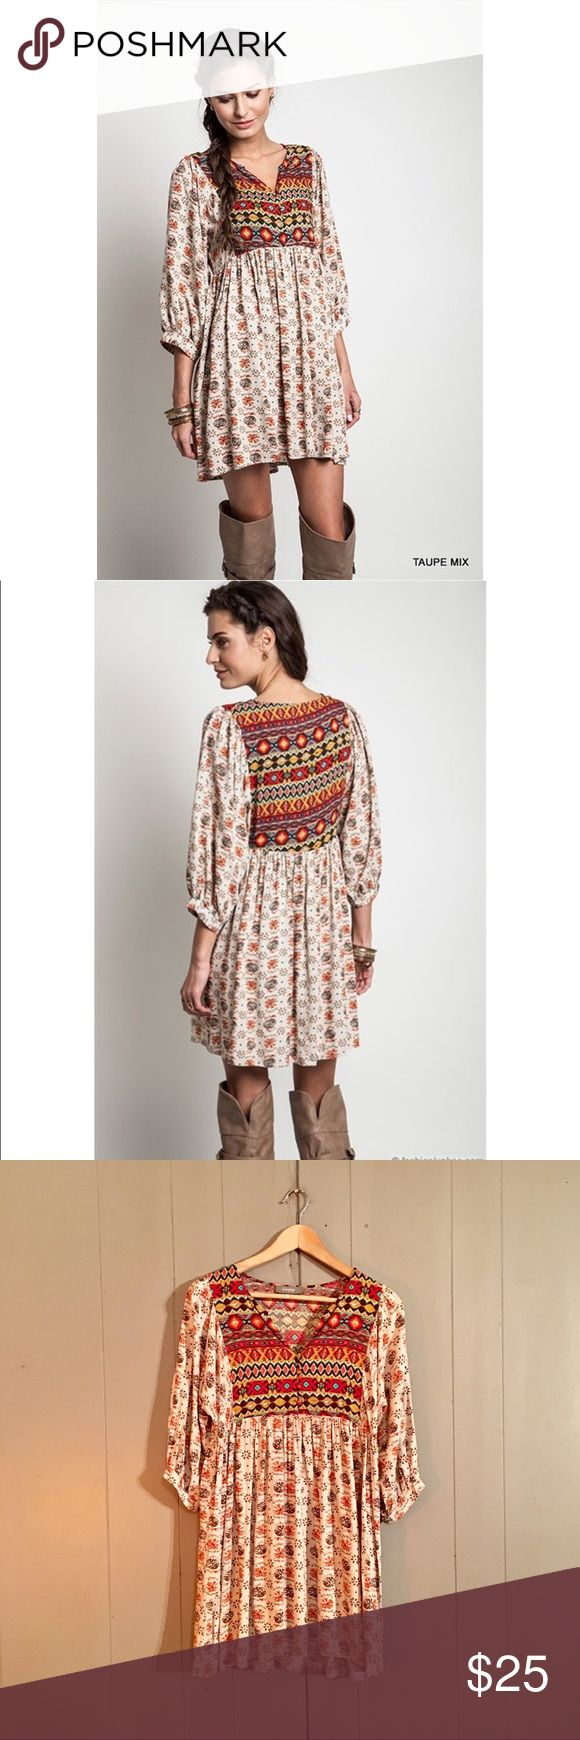 Boho Tribal Print Babydoll Tunic Dress Adorable lightweight dress! Perfect for any season. Excellent used condition. Offers are welcome. Umgee Dresses Mini